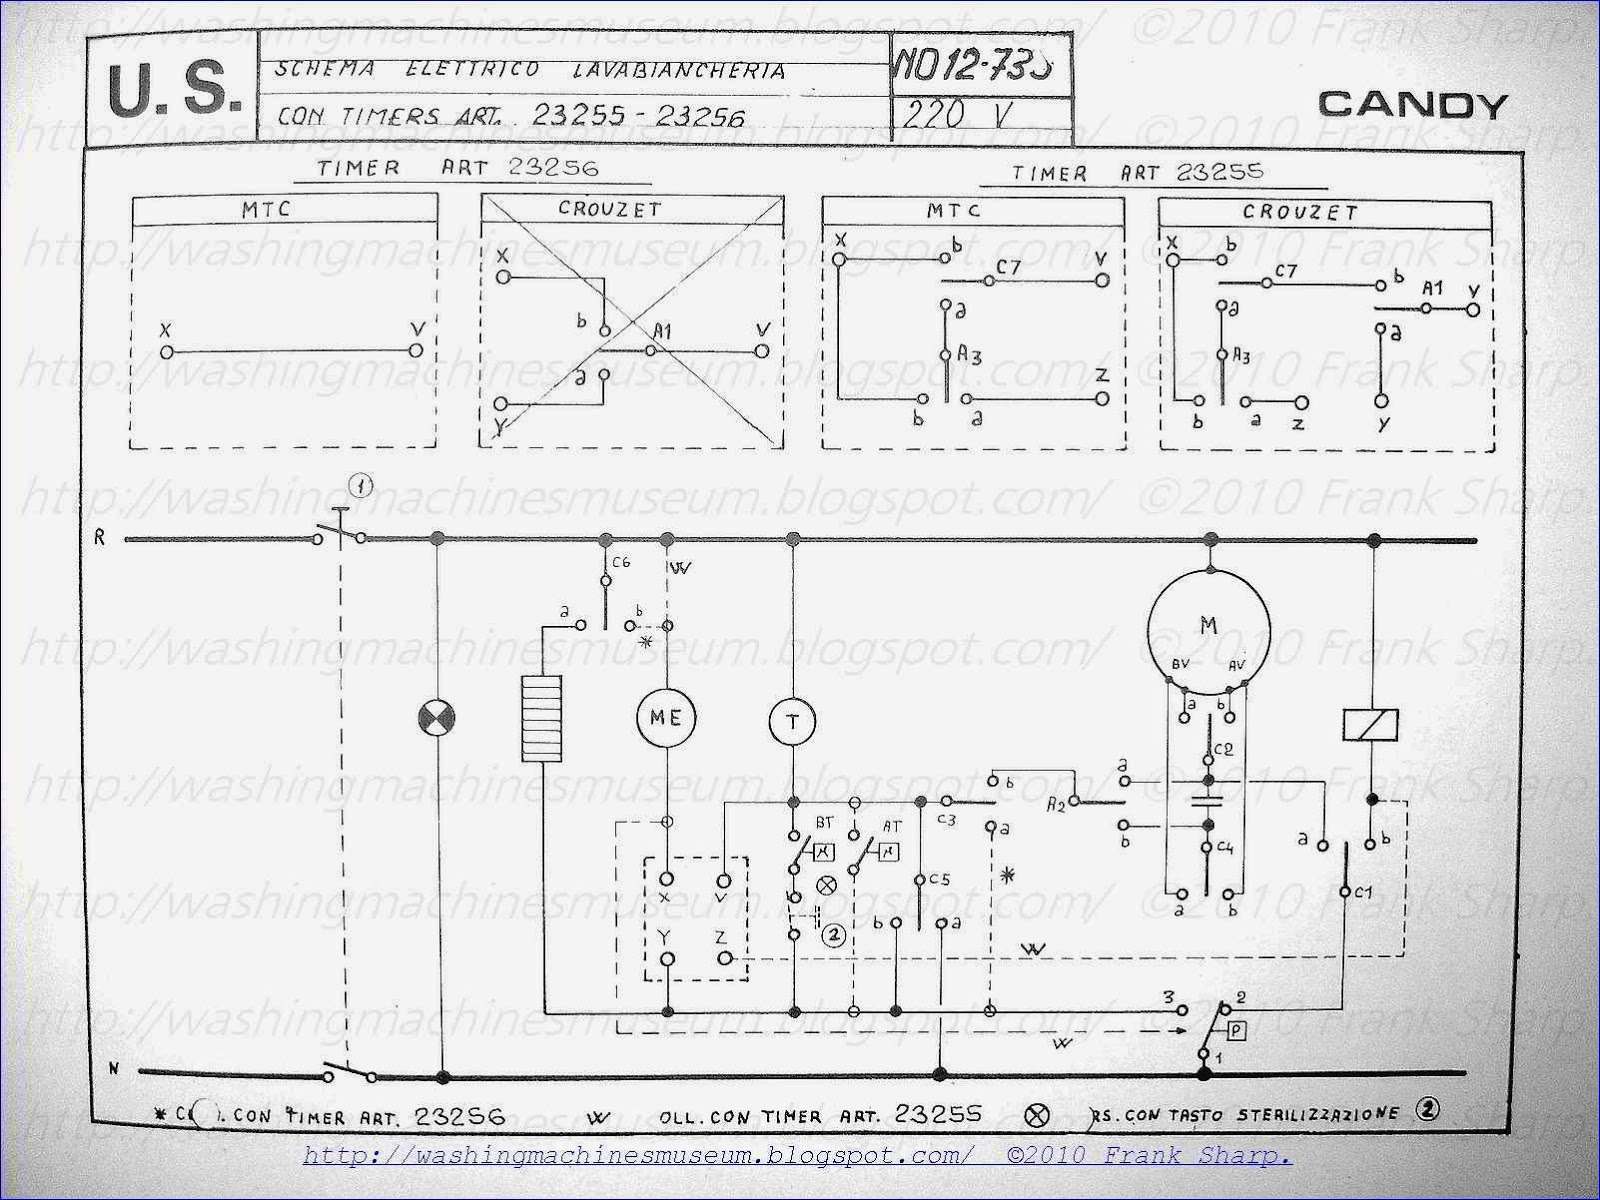 Wonderful Dryer Motor Wiring Diagram Pictures Inspiration ...